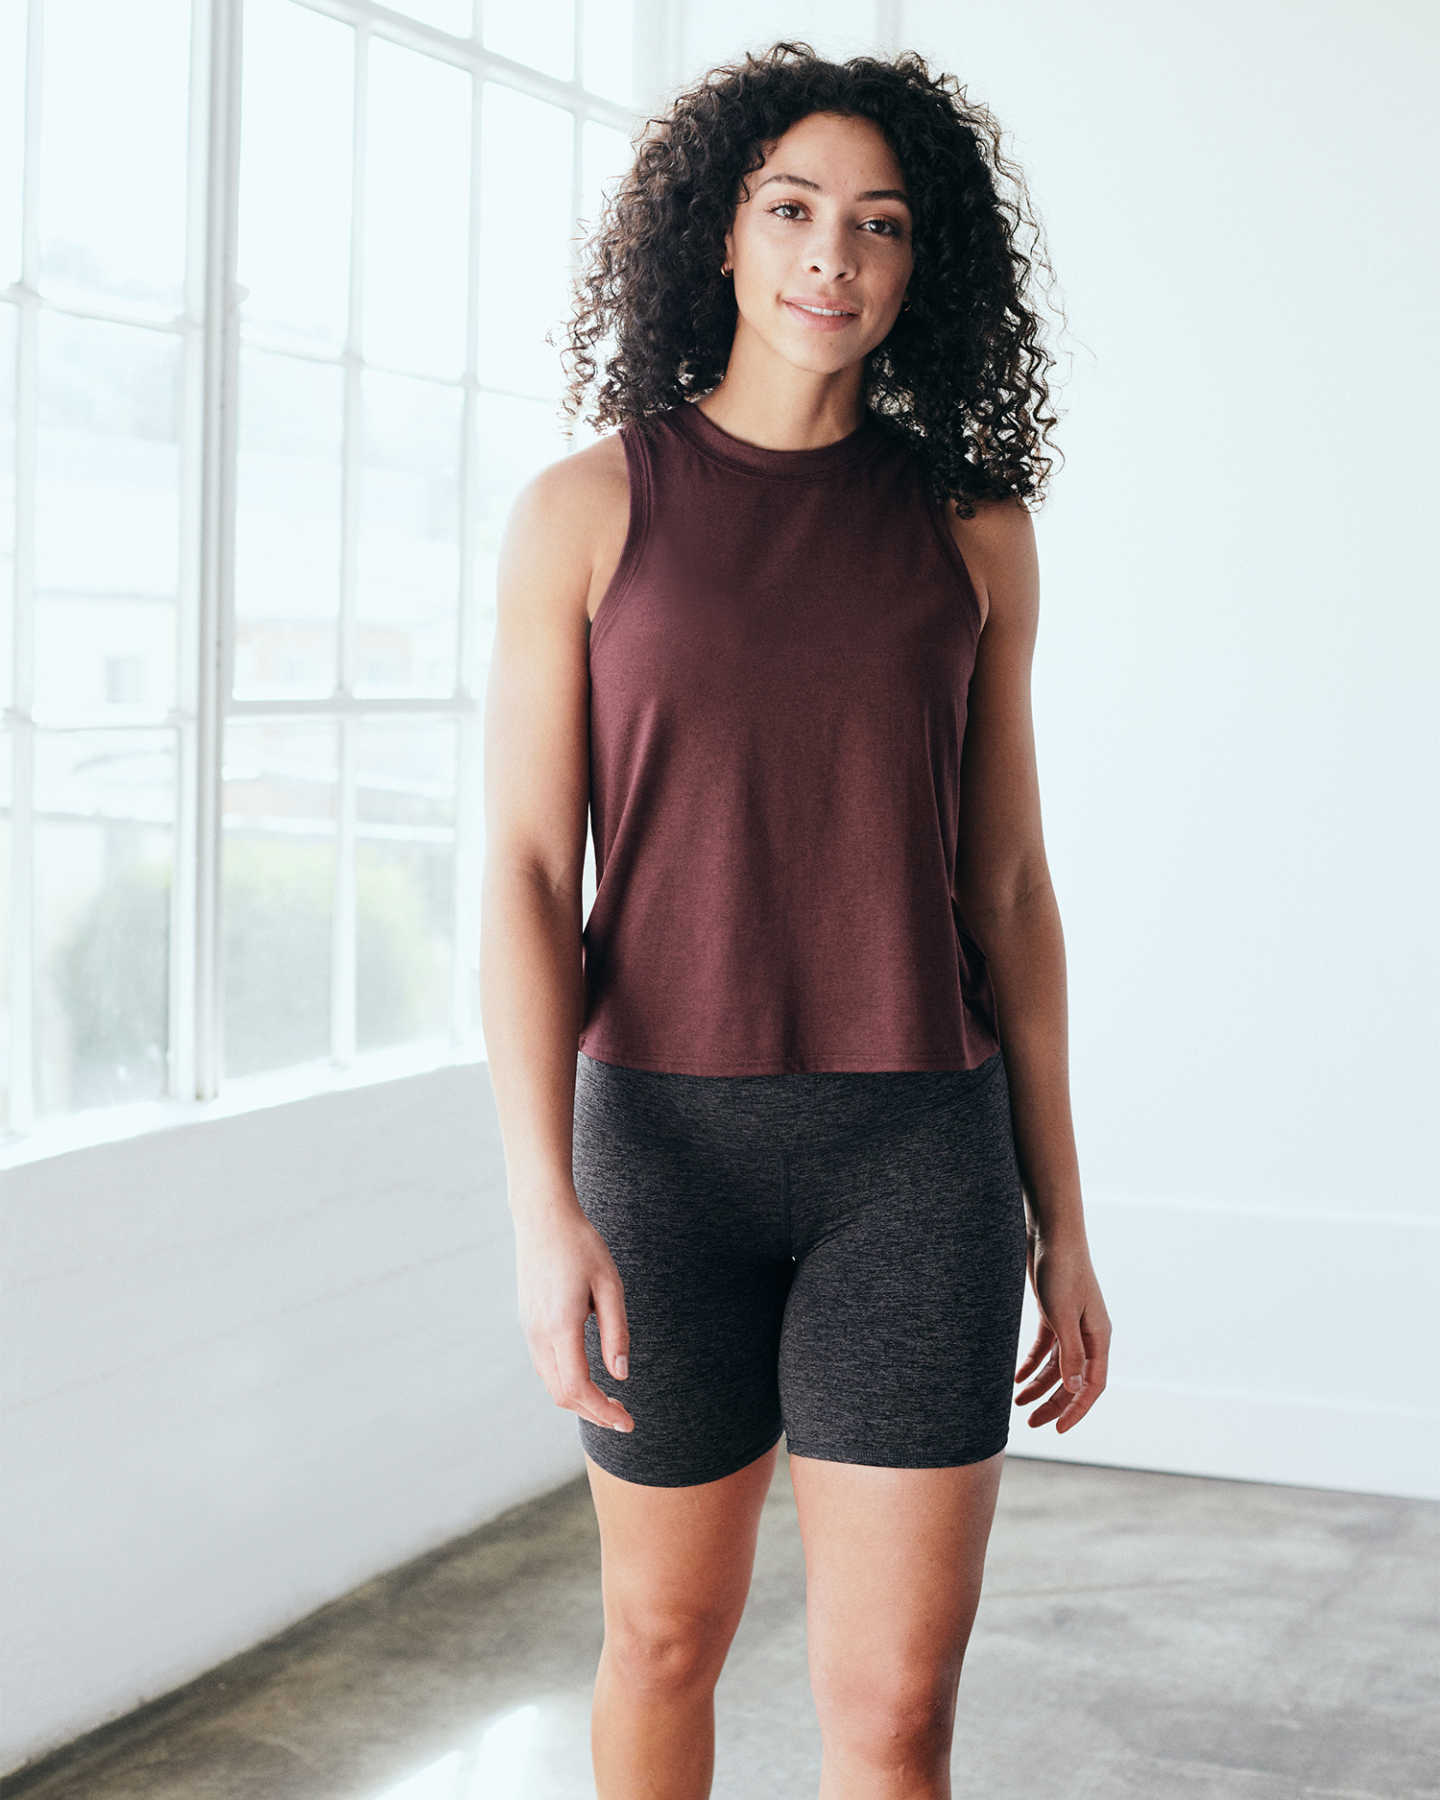 Flowknit Ultra-Soft Performance Tank - Burgundy - 12 - Thumbnail